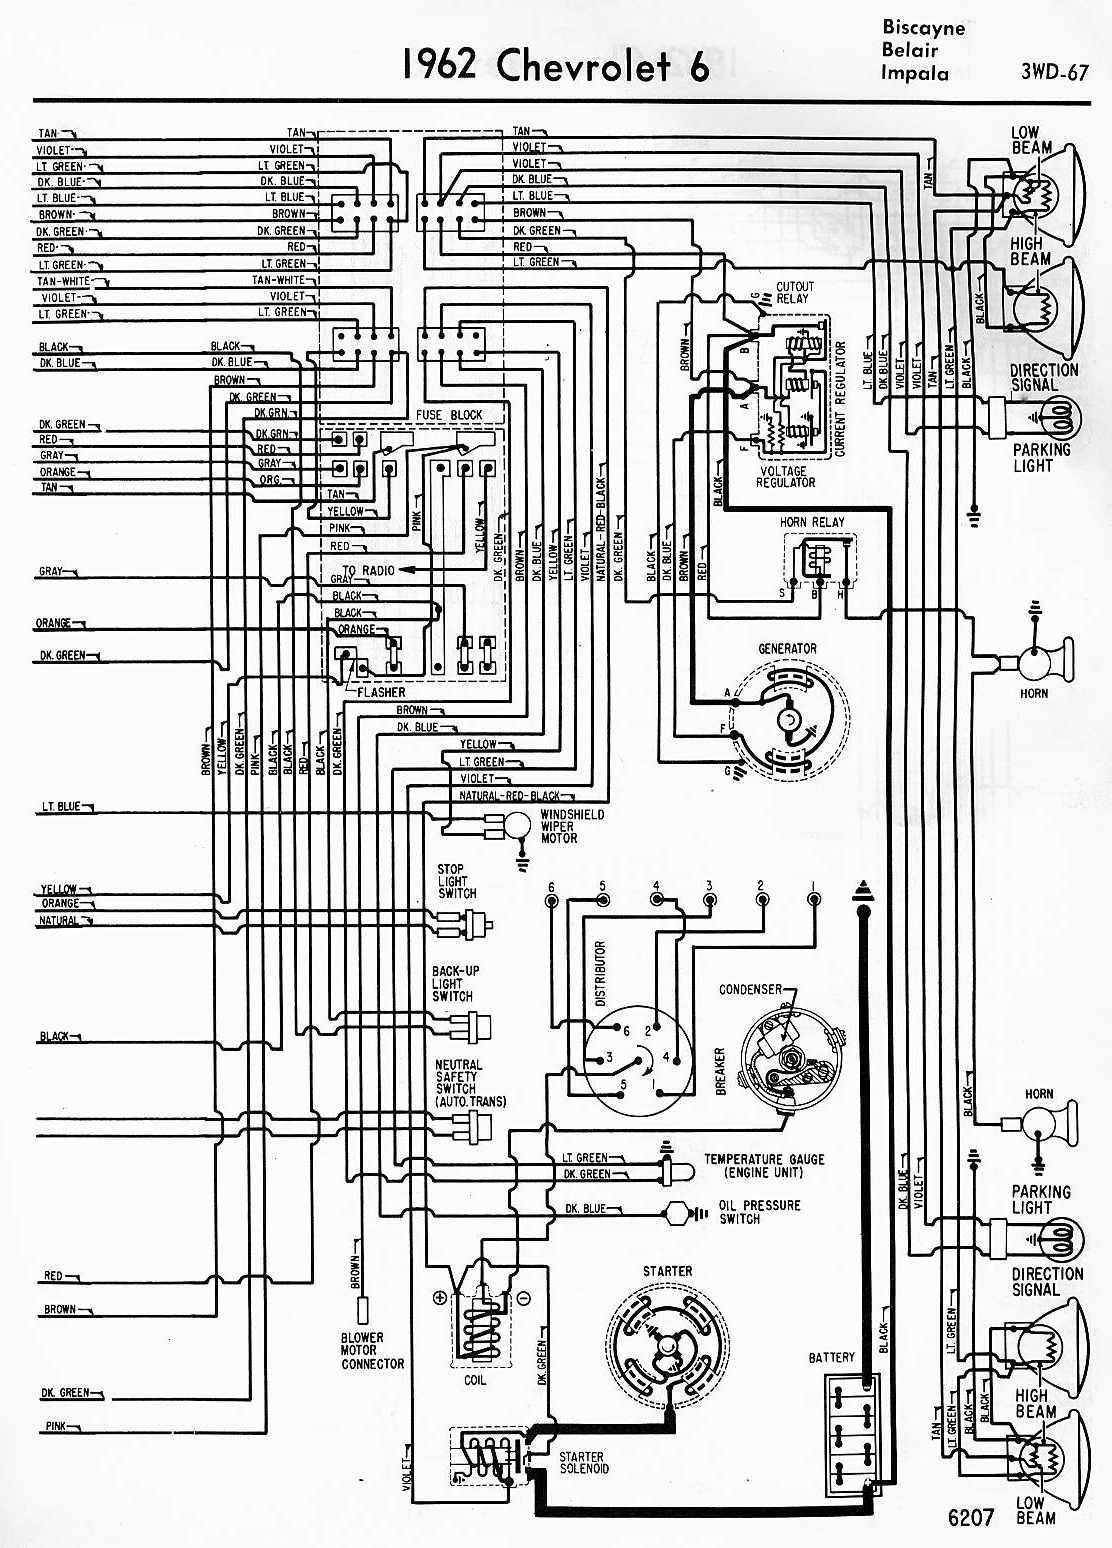 small resolution of under dash wiring harness 1970 impala wiring diagram mega 1970 chevy impala full size wiring harness diagram manual